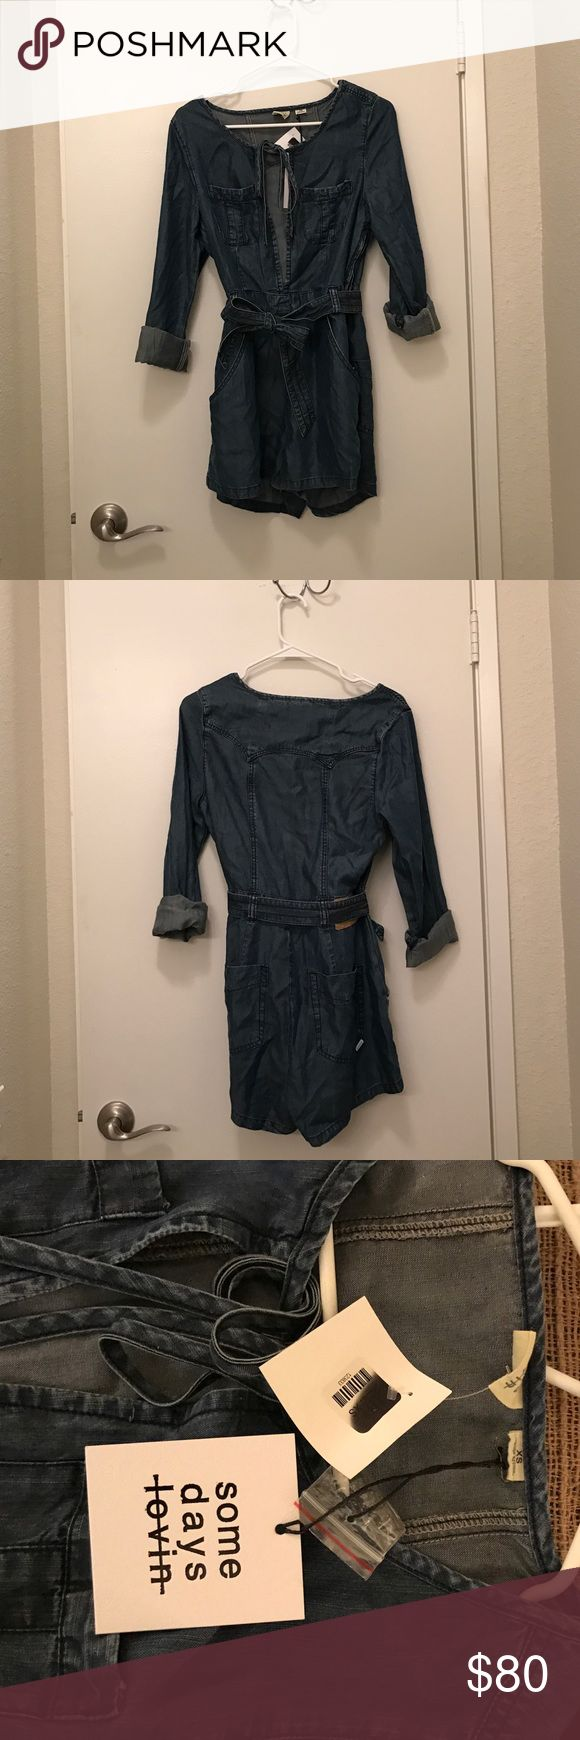 Blue Jean Romper Long sleeved, blue jean Romper. Never been worn. Has the tags still attached. It ties up in the front on the waist and chest. Also has clips to button up in the front. Super cute for the summer! Somedays Lovin Other